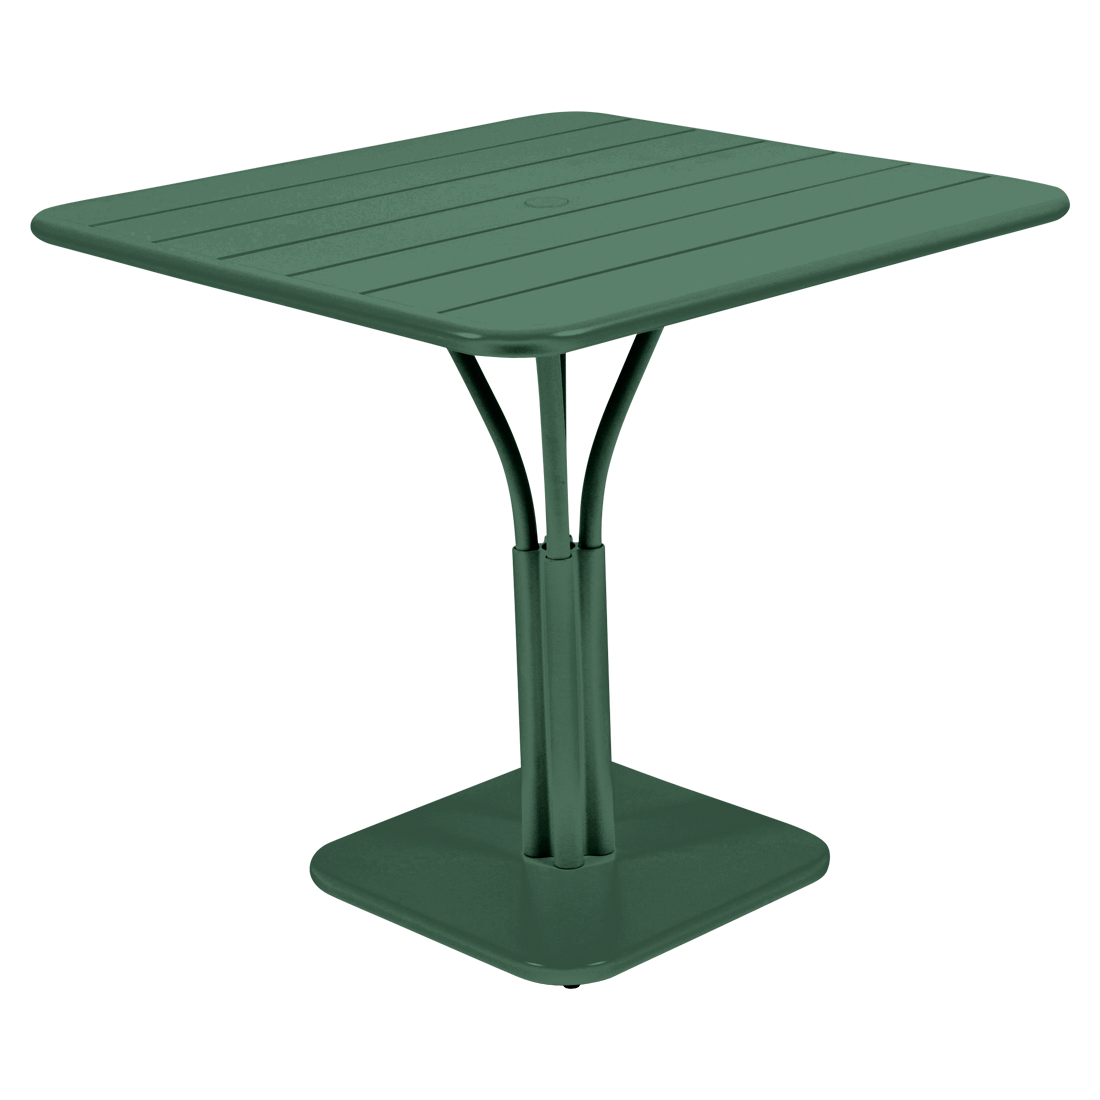 Table 80x80 cm luxembourg table de jardin metal for Fermob table de jardin